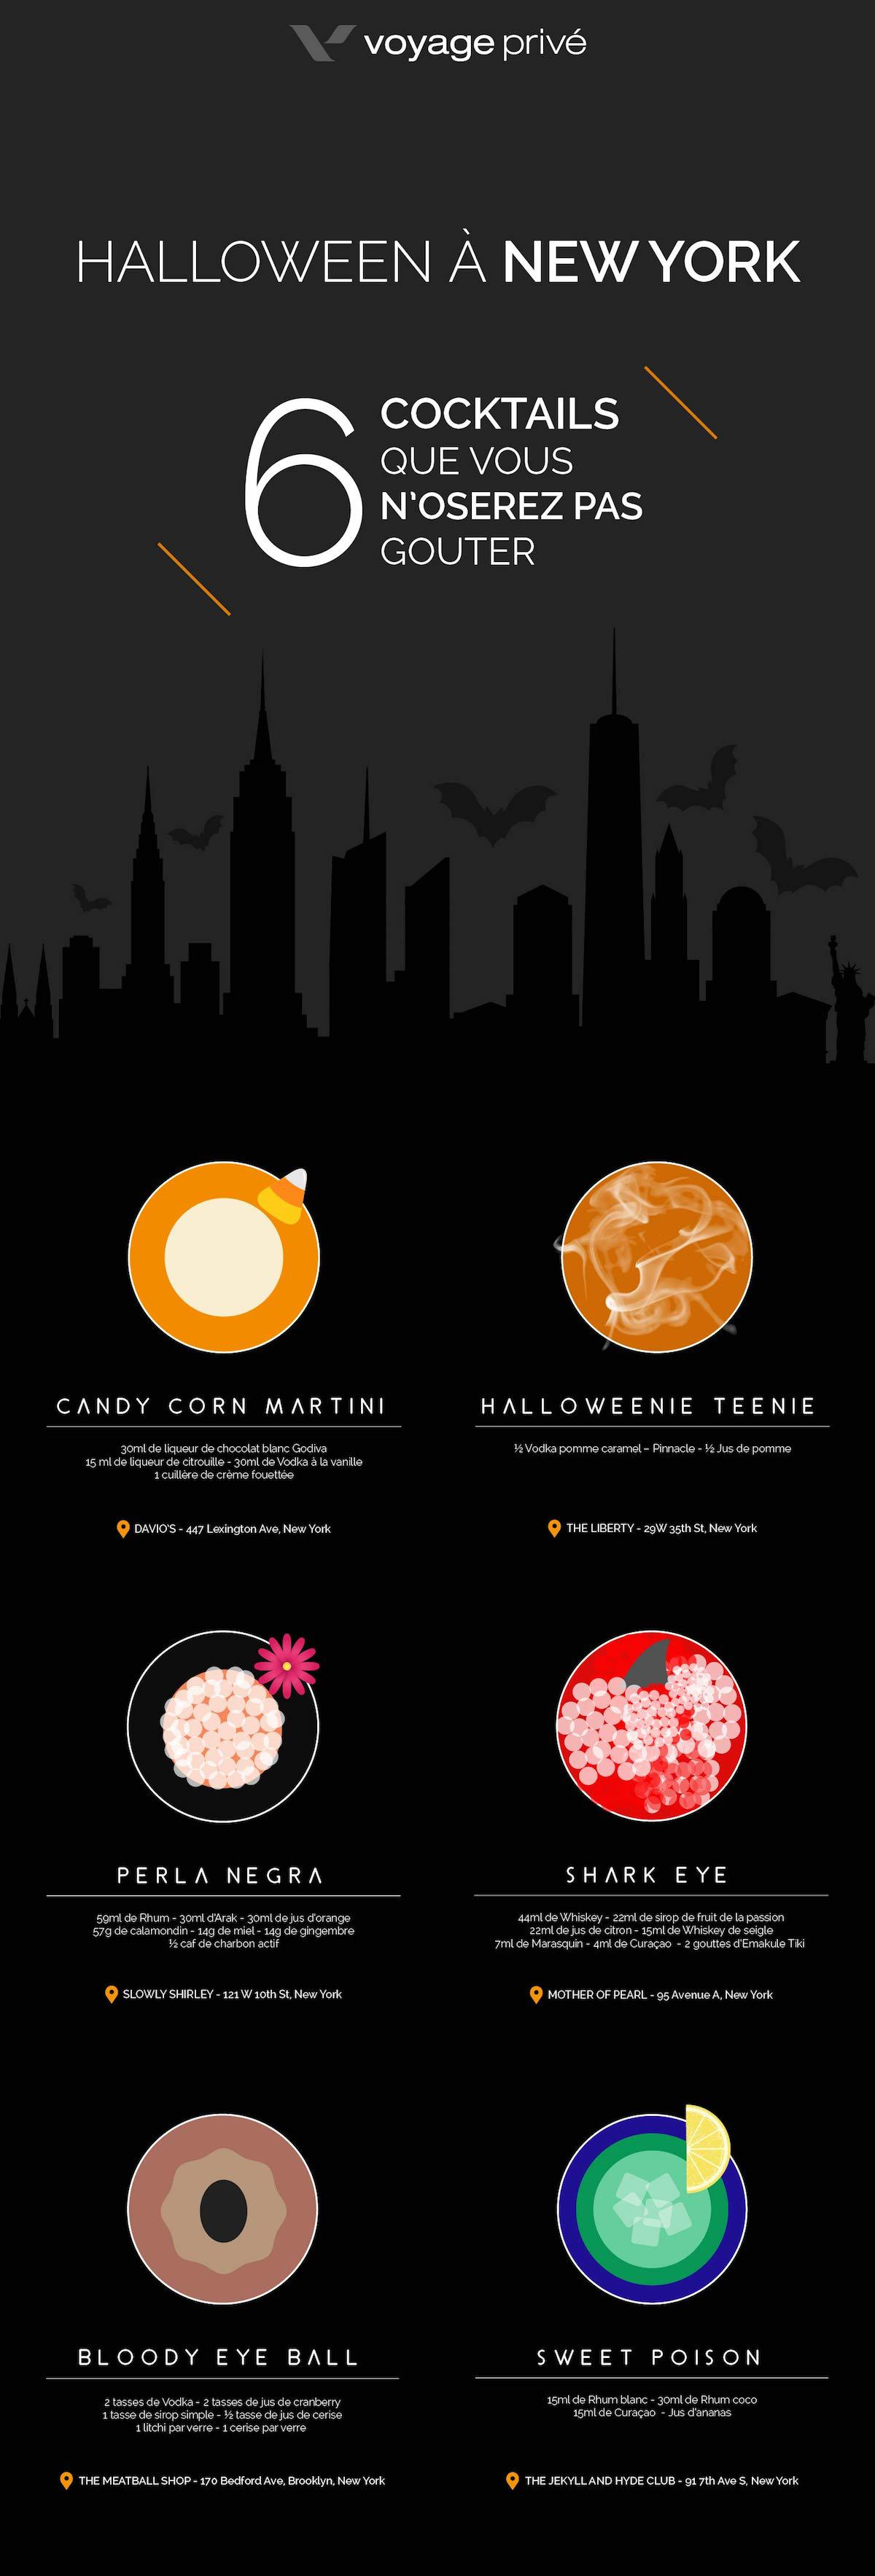 6 cocktails pour Halloween - New York